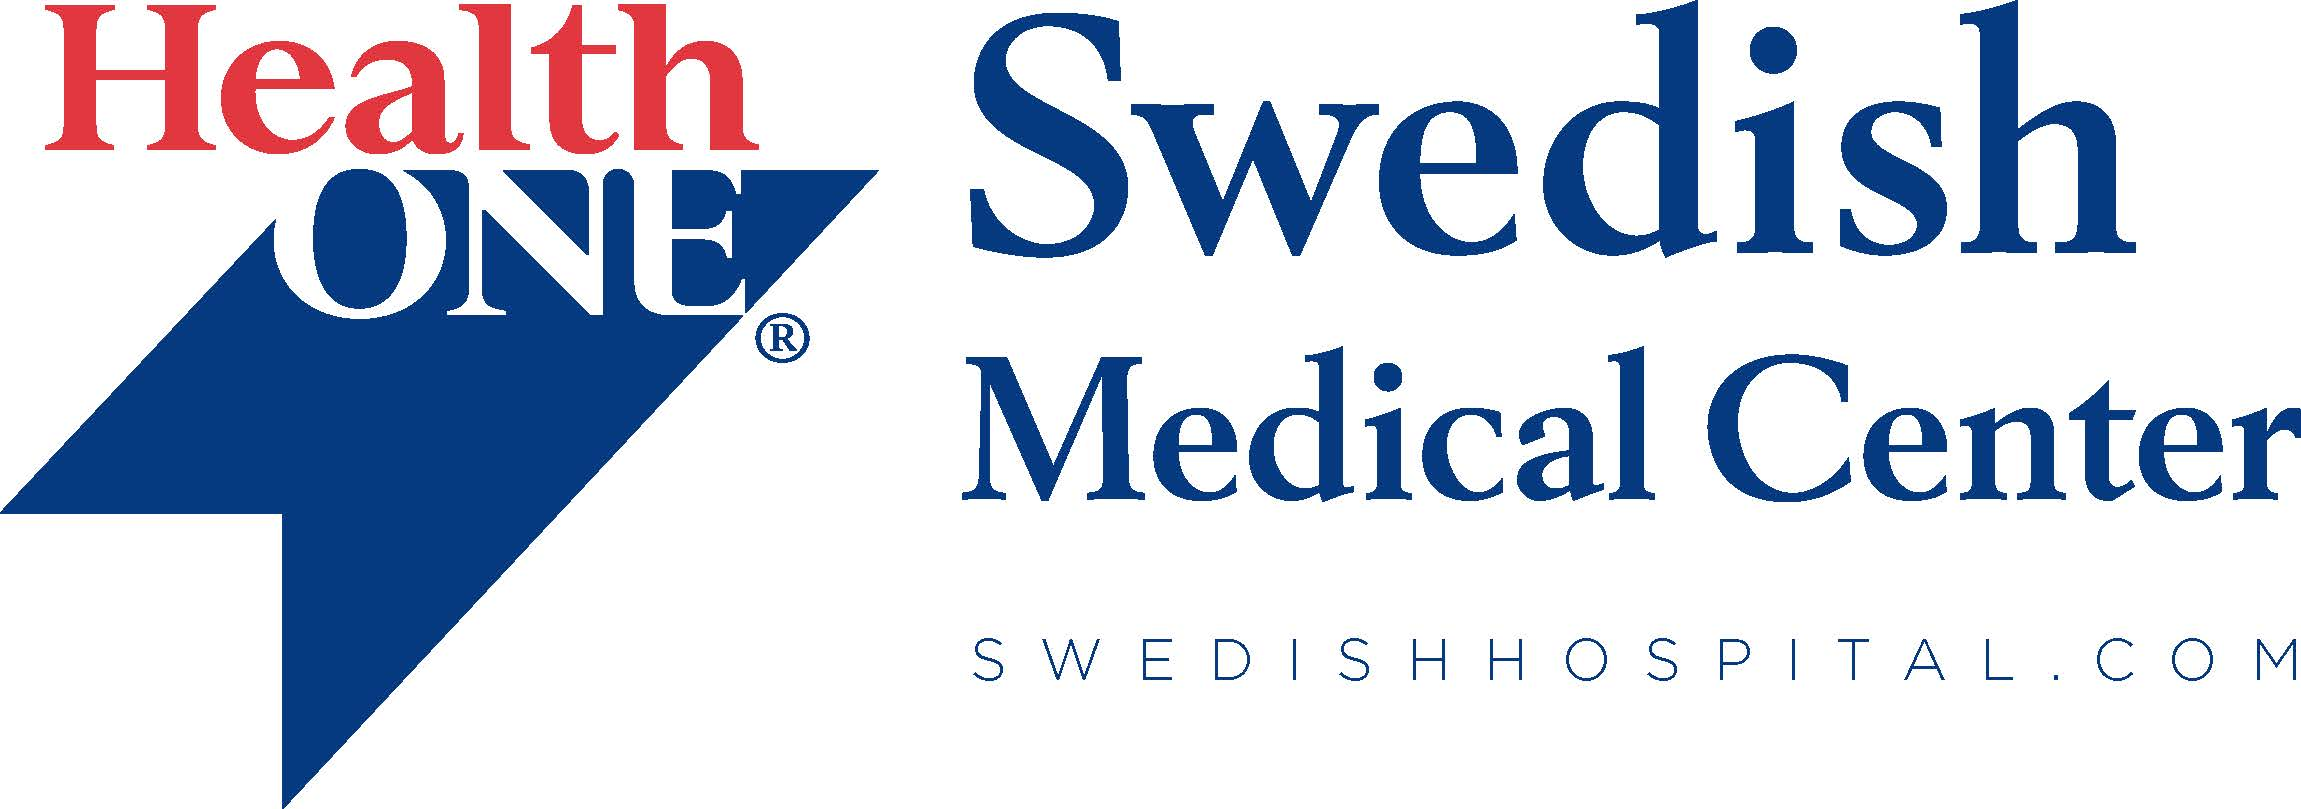 HCA Healthcare/HealthONE's Swedish Medical Center Performs First Robotic Minimally Invasive Brain Procedure for Epilepsy